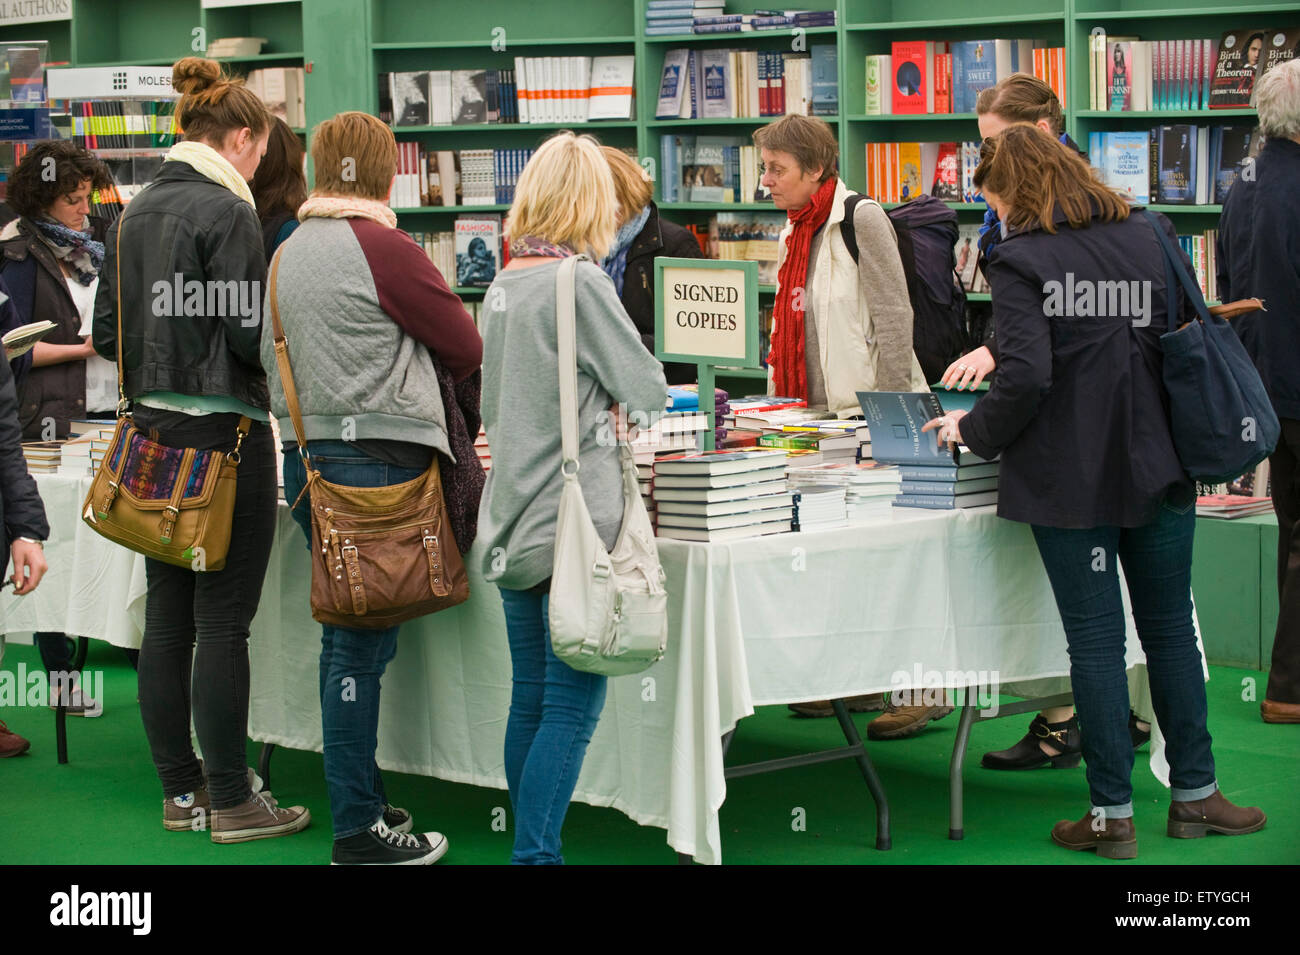 Visitors browsing author signed copies of books in bookshop at Hay Festival 2015 - Stock Image